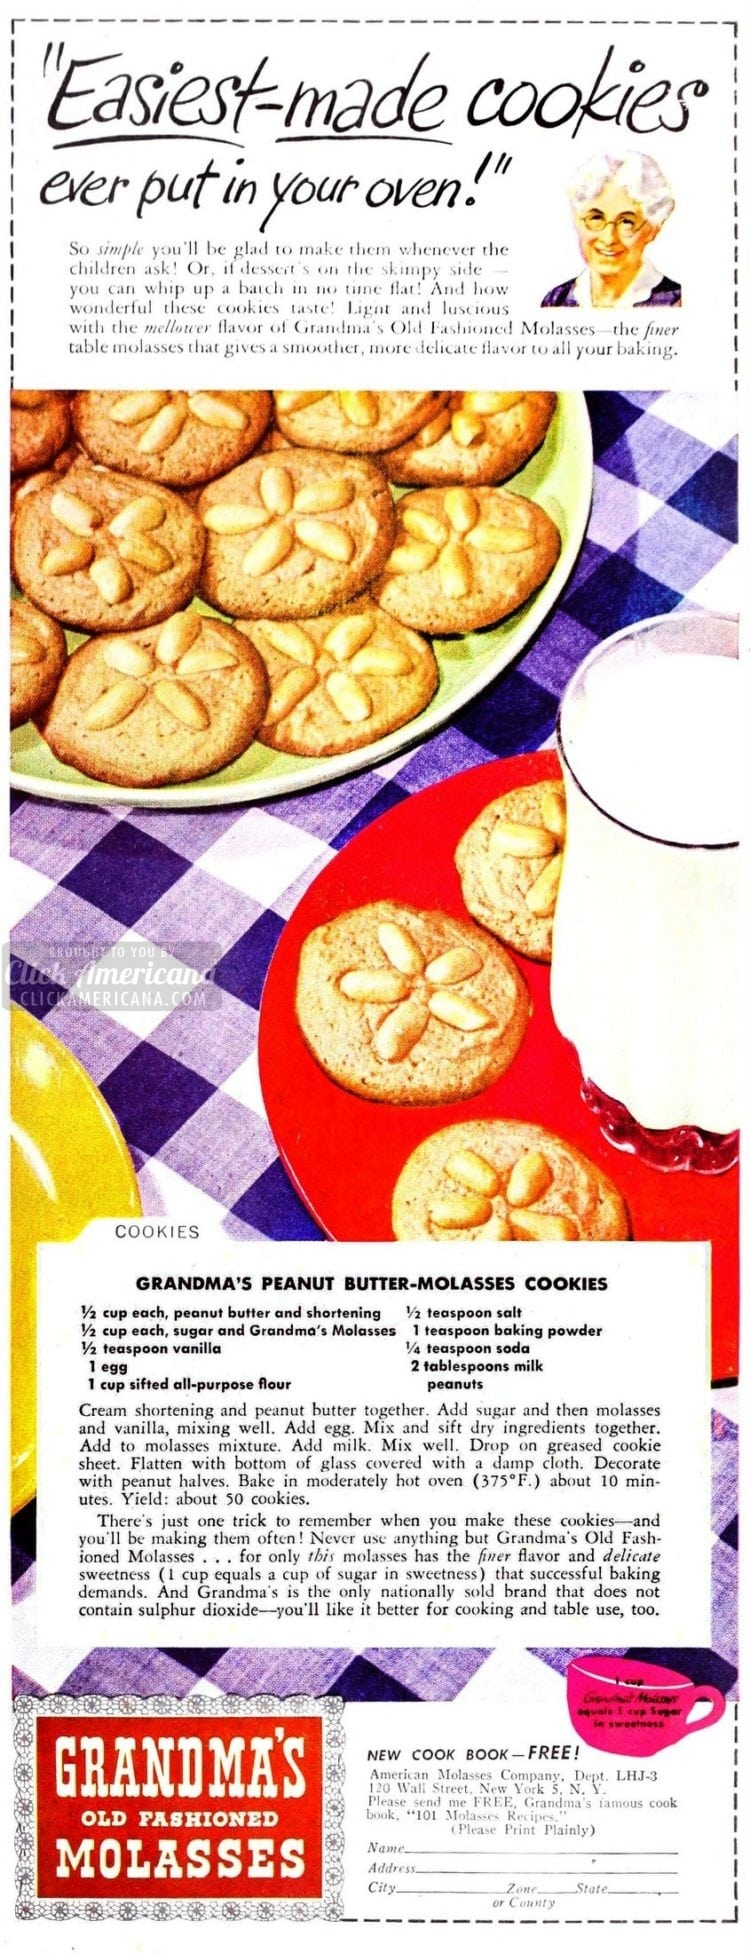 Grandma's peanut butter molasses cookies (1947)